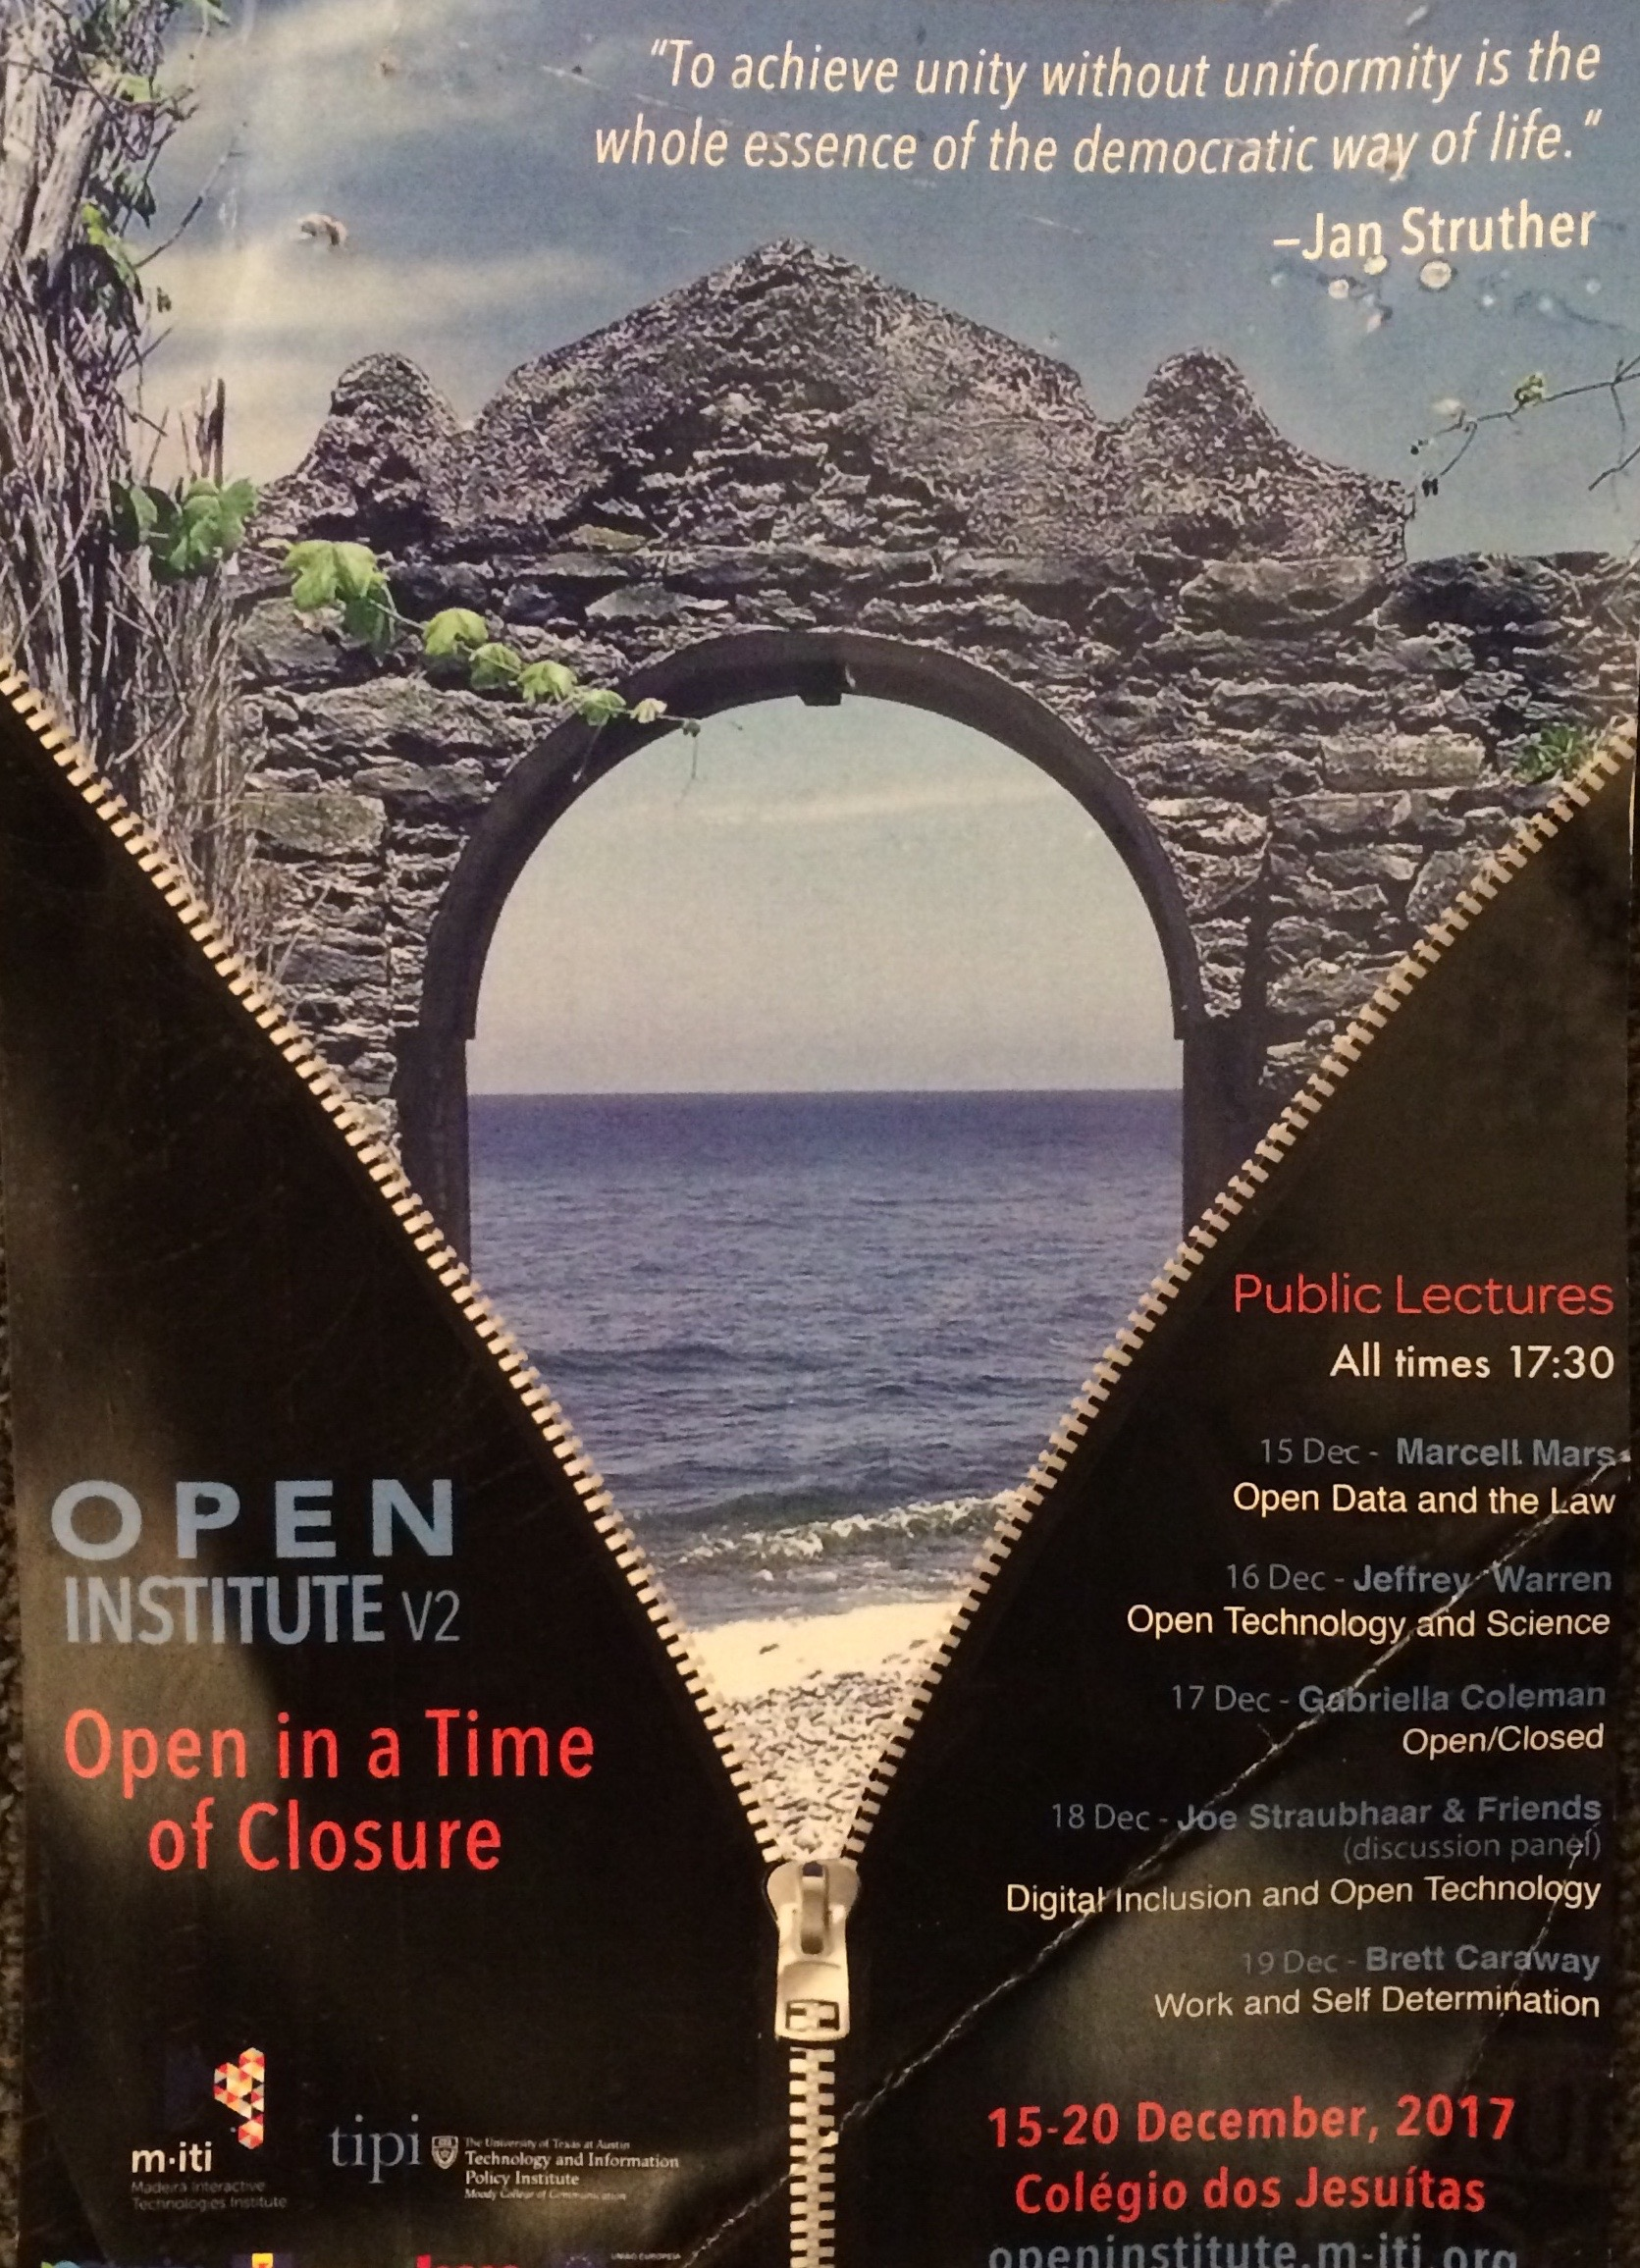 poster for Open Institute2